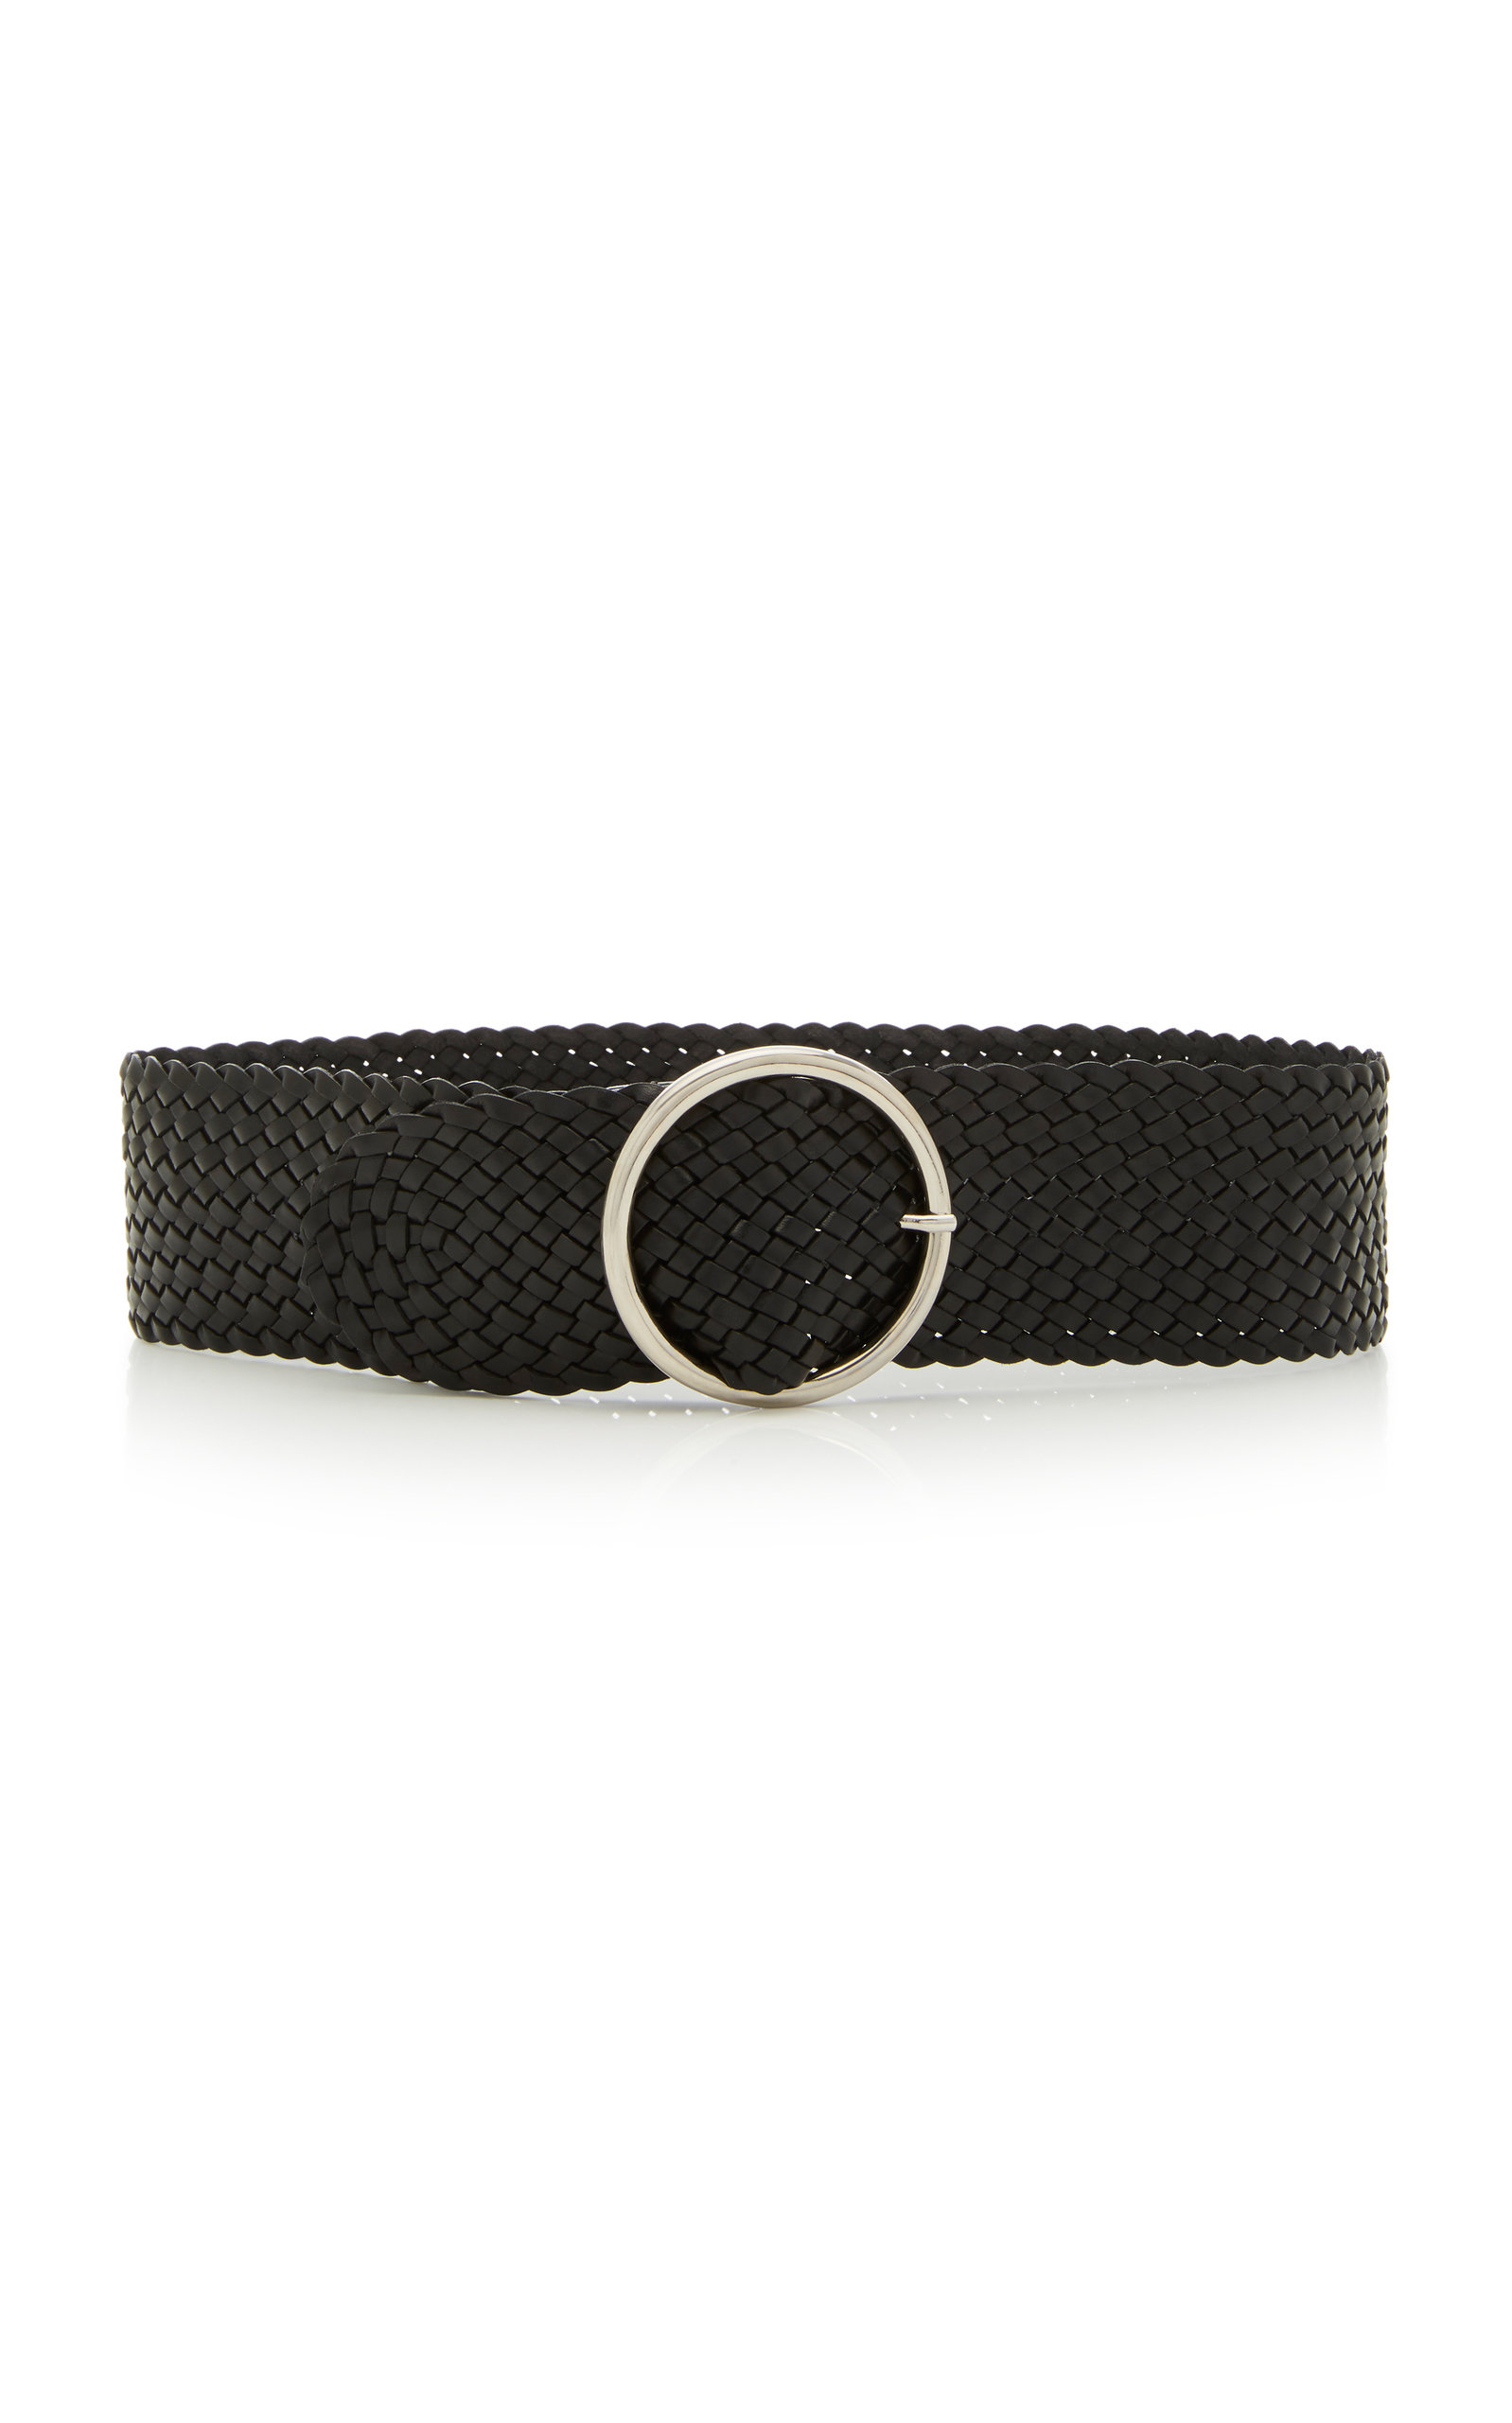 ANDERSON'S Woven Leather Belt in Black